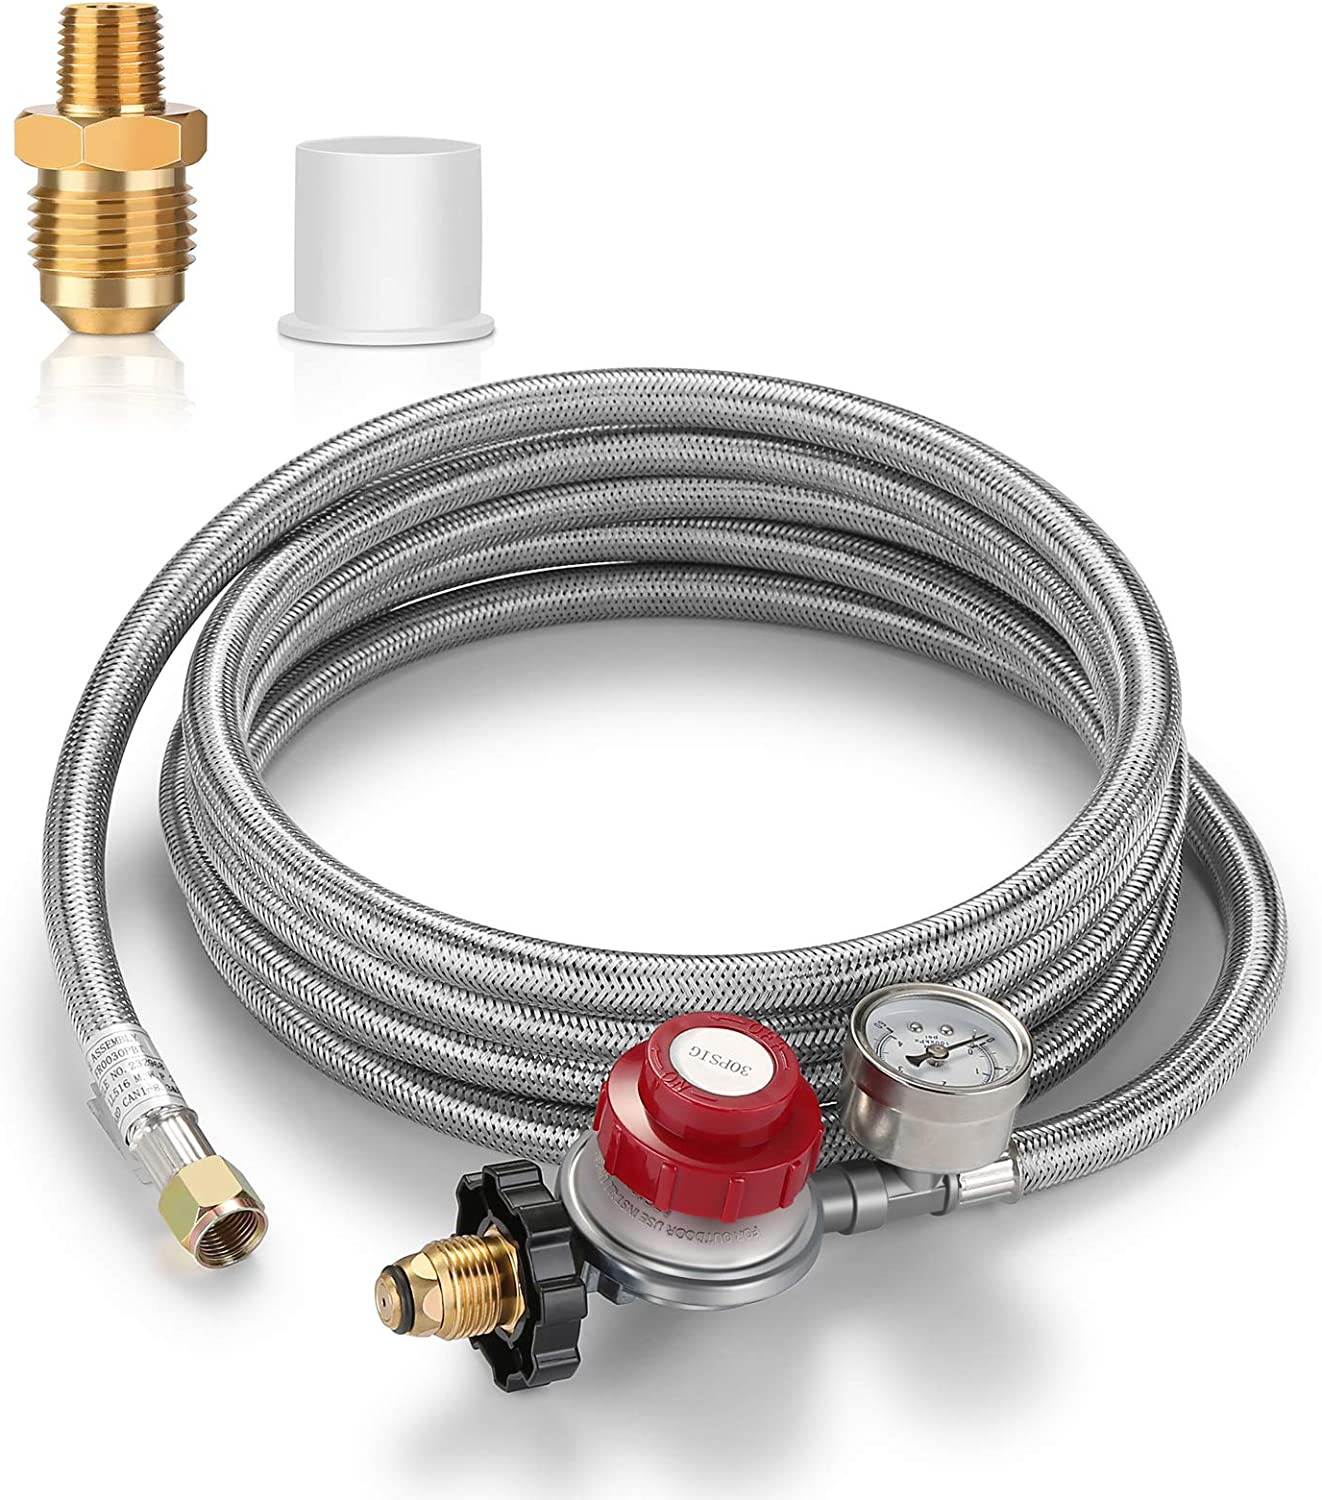 WADEO 12 Feet Adjustable Propane Regulator Hose with Gauge, 0-30 PSI High Pressure Stainless Steel Braided Hose with 1/8 MNPT Pipe Fitting for Grill, Burner, Fryer, Cooker, firepit and More